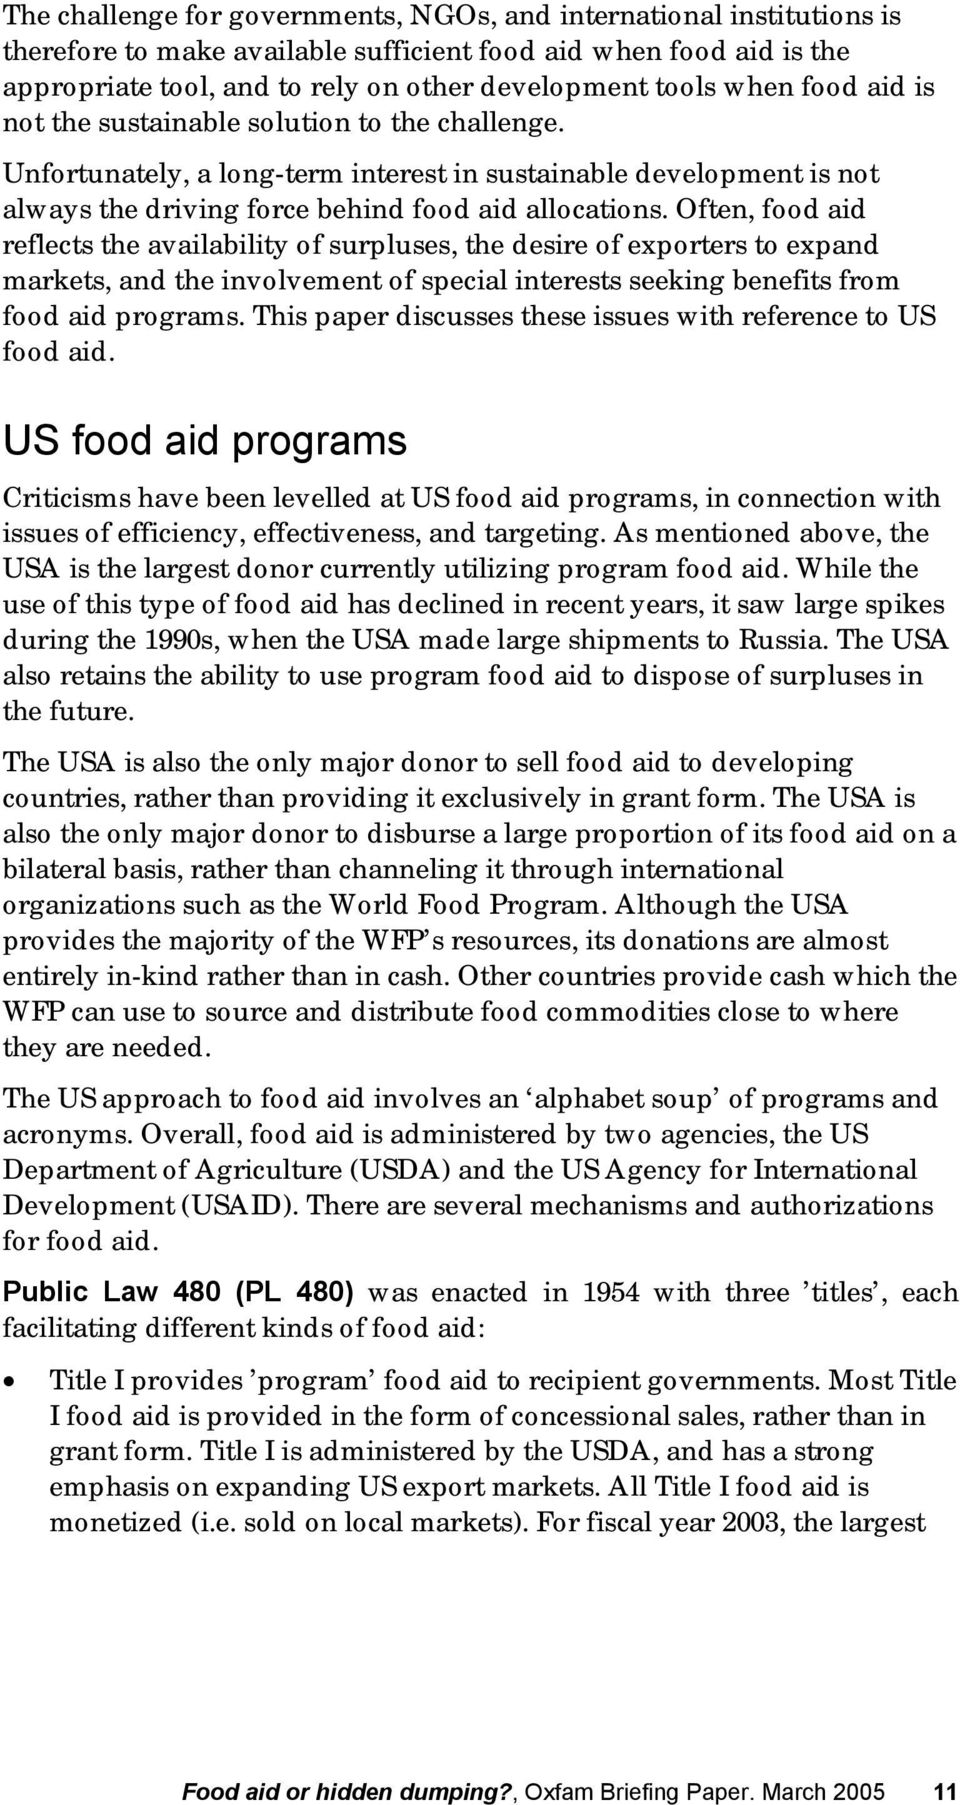 Often, food aid reflects the availability of surpluses, the desire of exporters to expand markets, and the involvement of special interests seeking benefits from food aid programs.